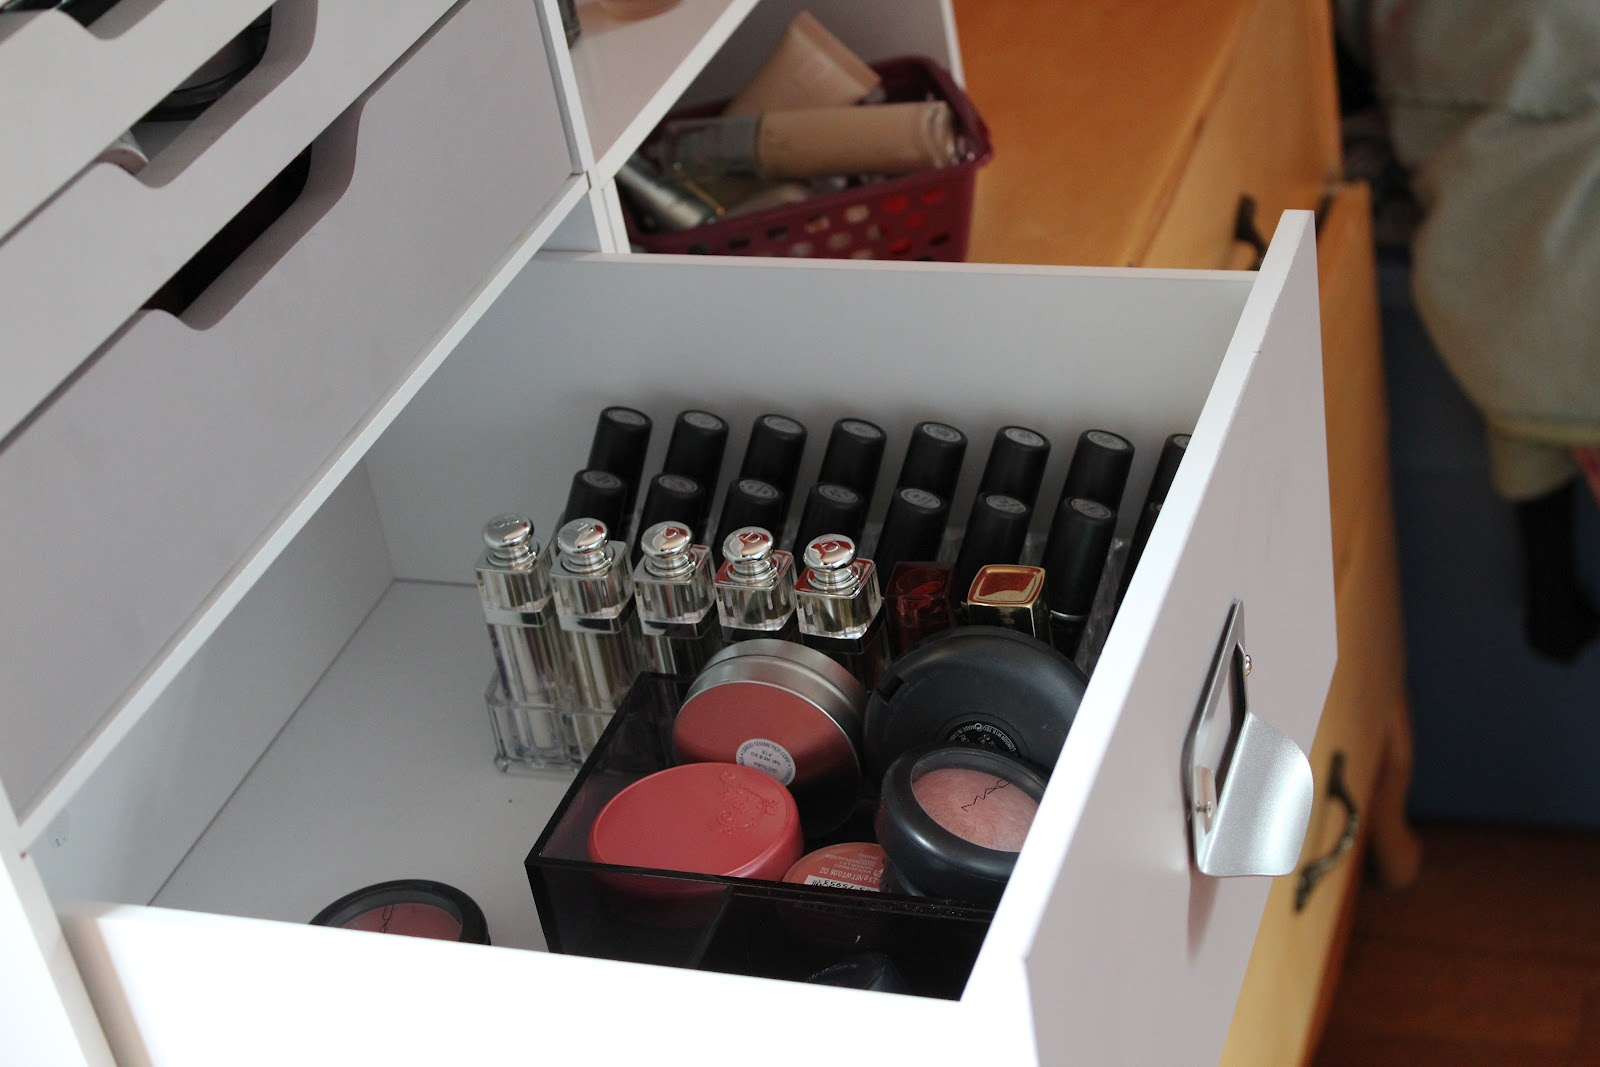 ... my makeup small pots such as lip products cream eye shadows and gel liners in the second drawer. The last drawer has plastic iders which hold mostly ... & thesmalllittlethingsinlife: Makeup Storage for an Ikealess City